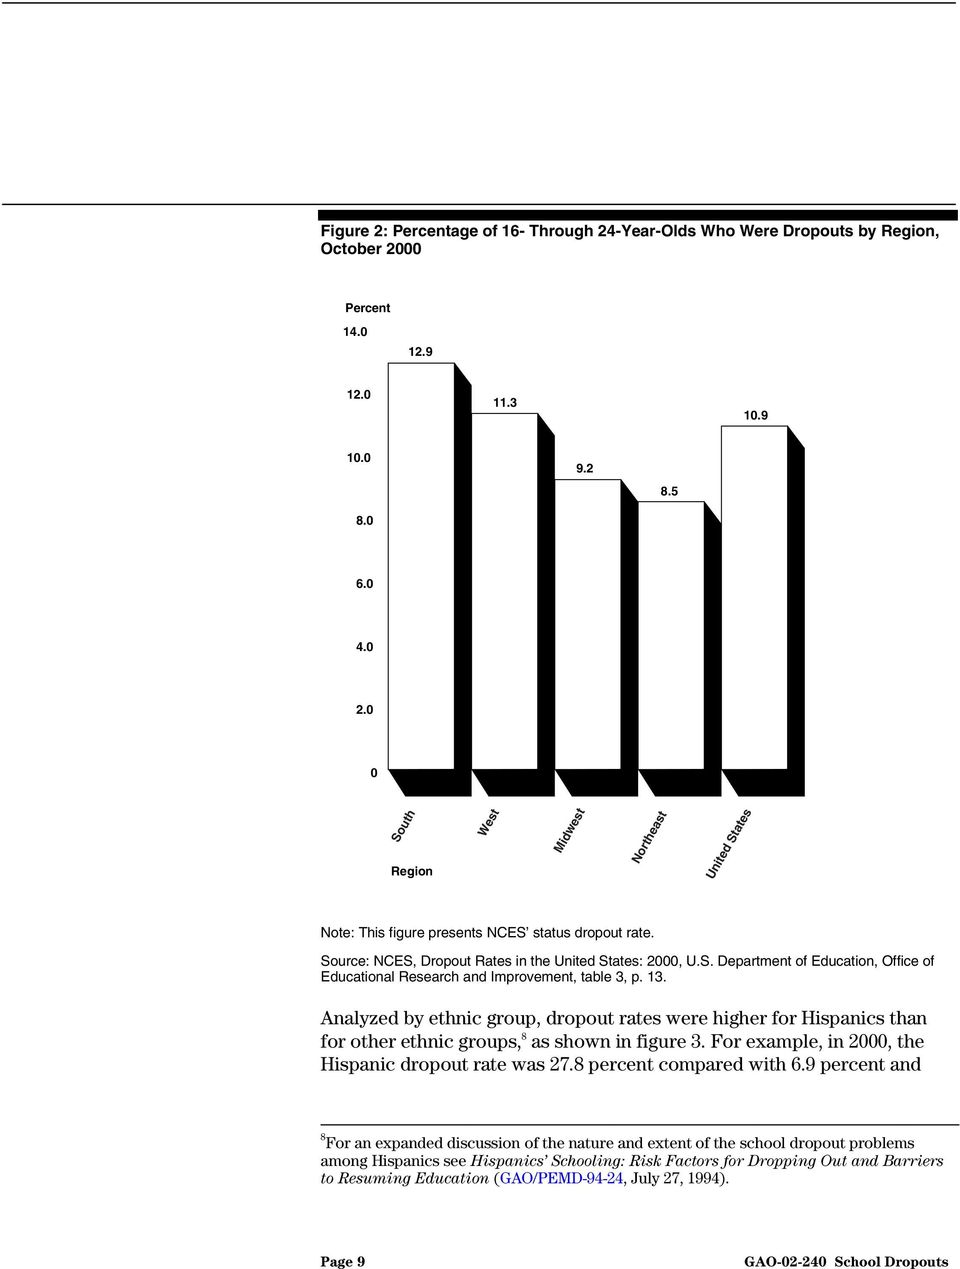 13. Analyzed by ethnic group, dropout rates were higher for Hispanics than for other ethnic groups, 8 as shown in figure 3. For example, in 2000, the Hispanic dropout rate was 27.